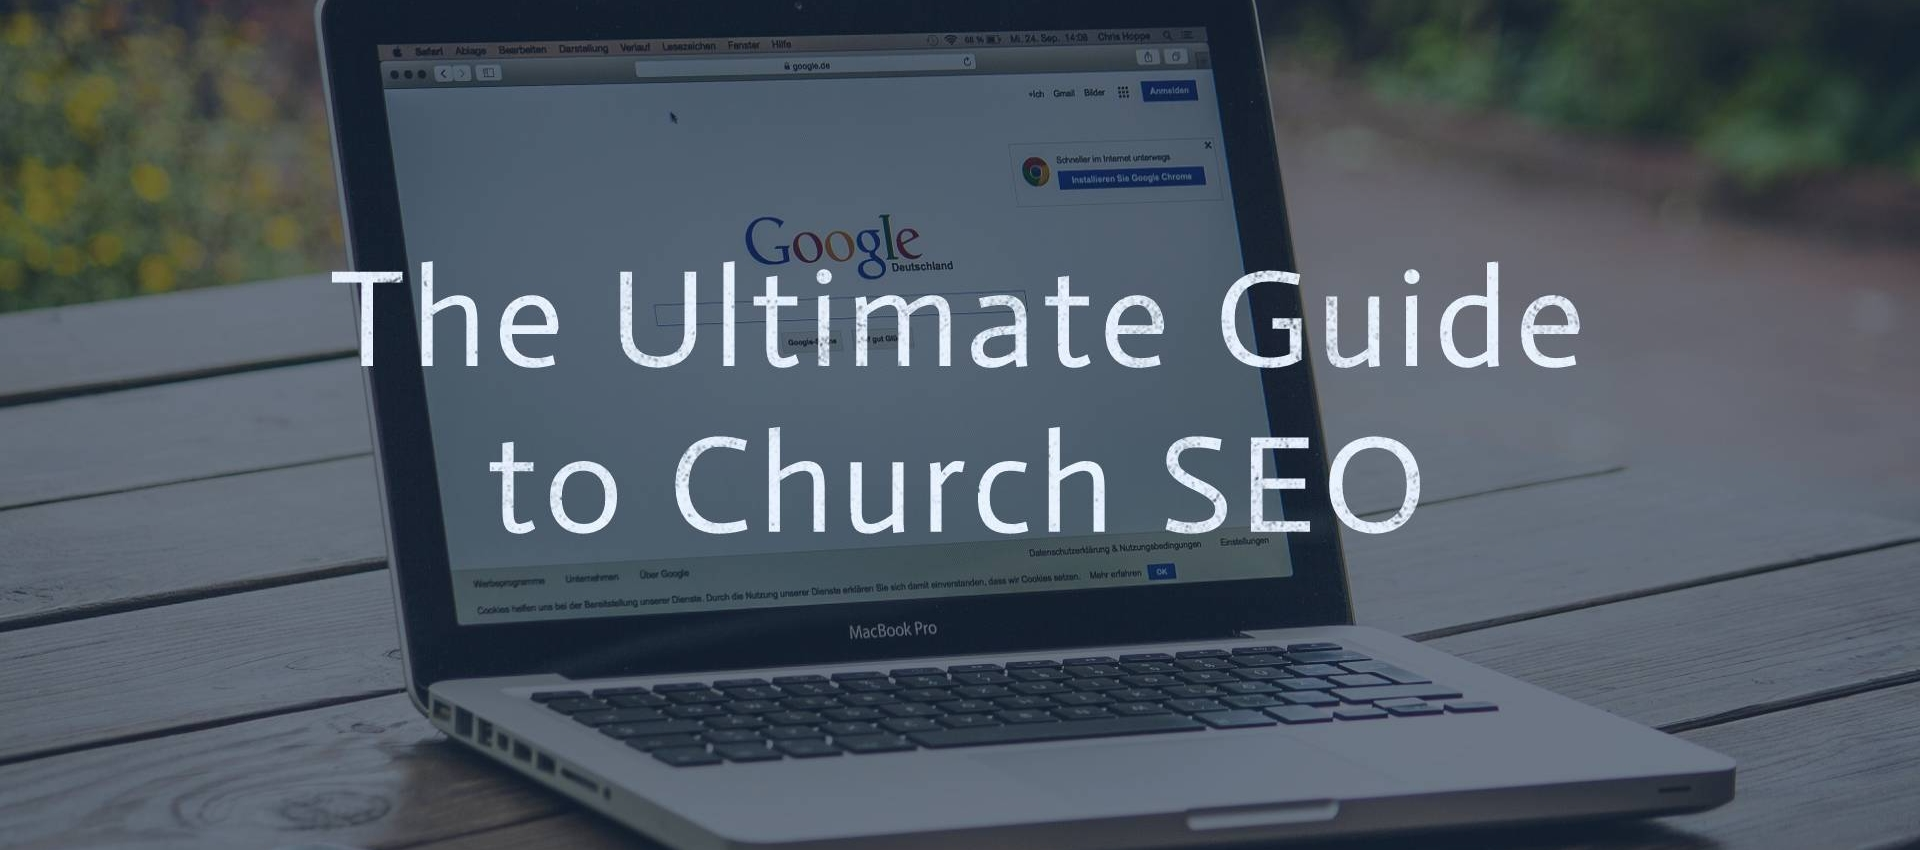 ultimate guide to church seo